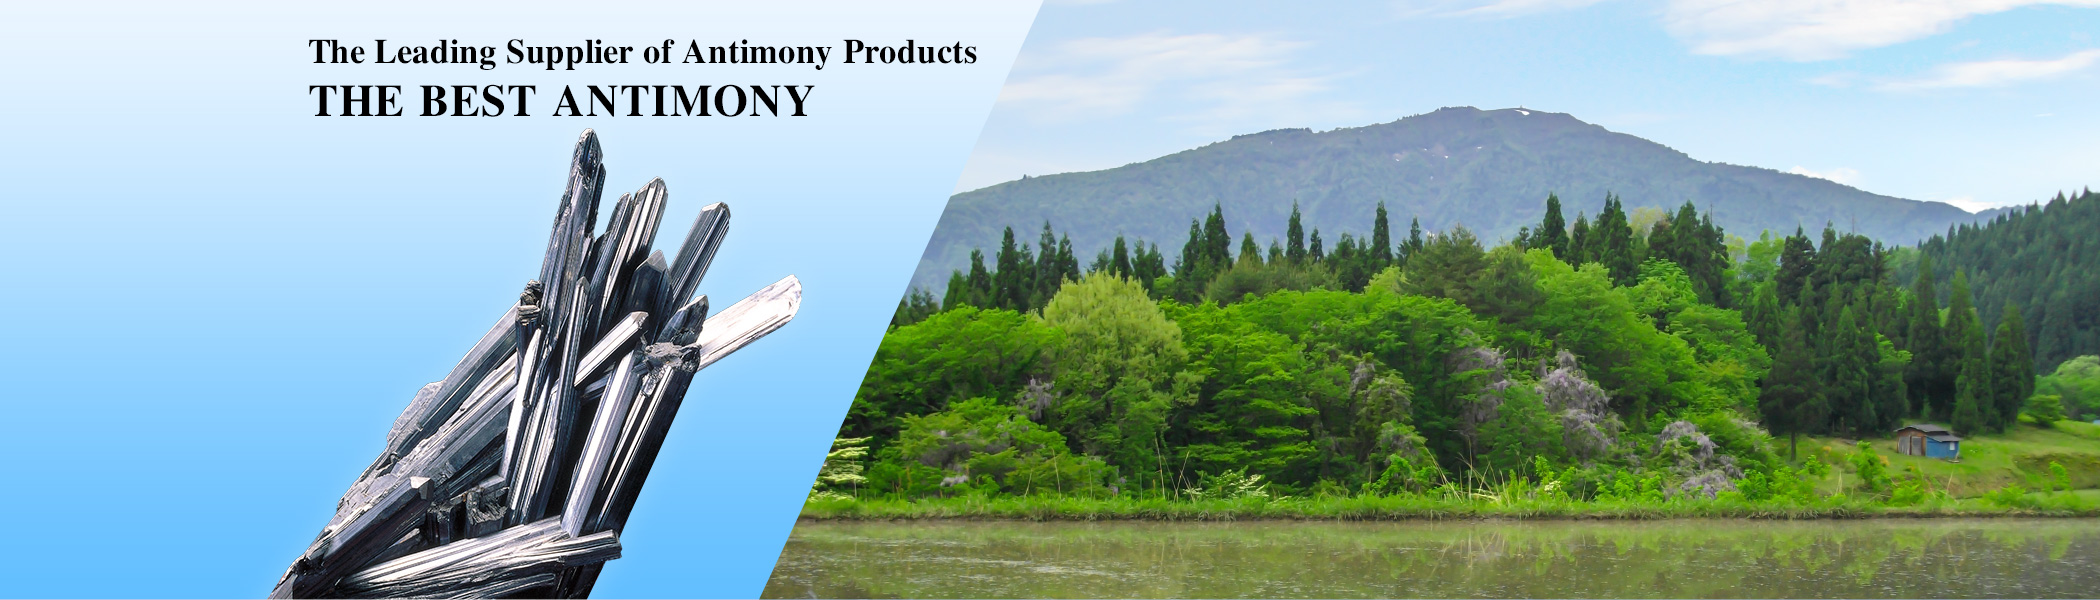 The Leading Supplier of Antimony Products THE BEST ANTIMONY